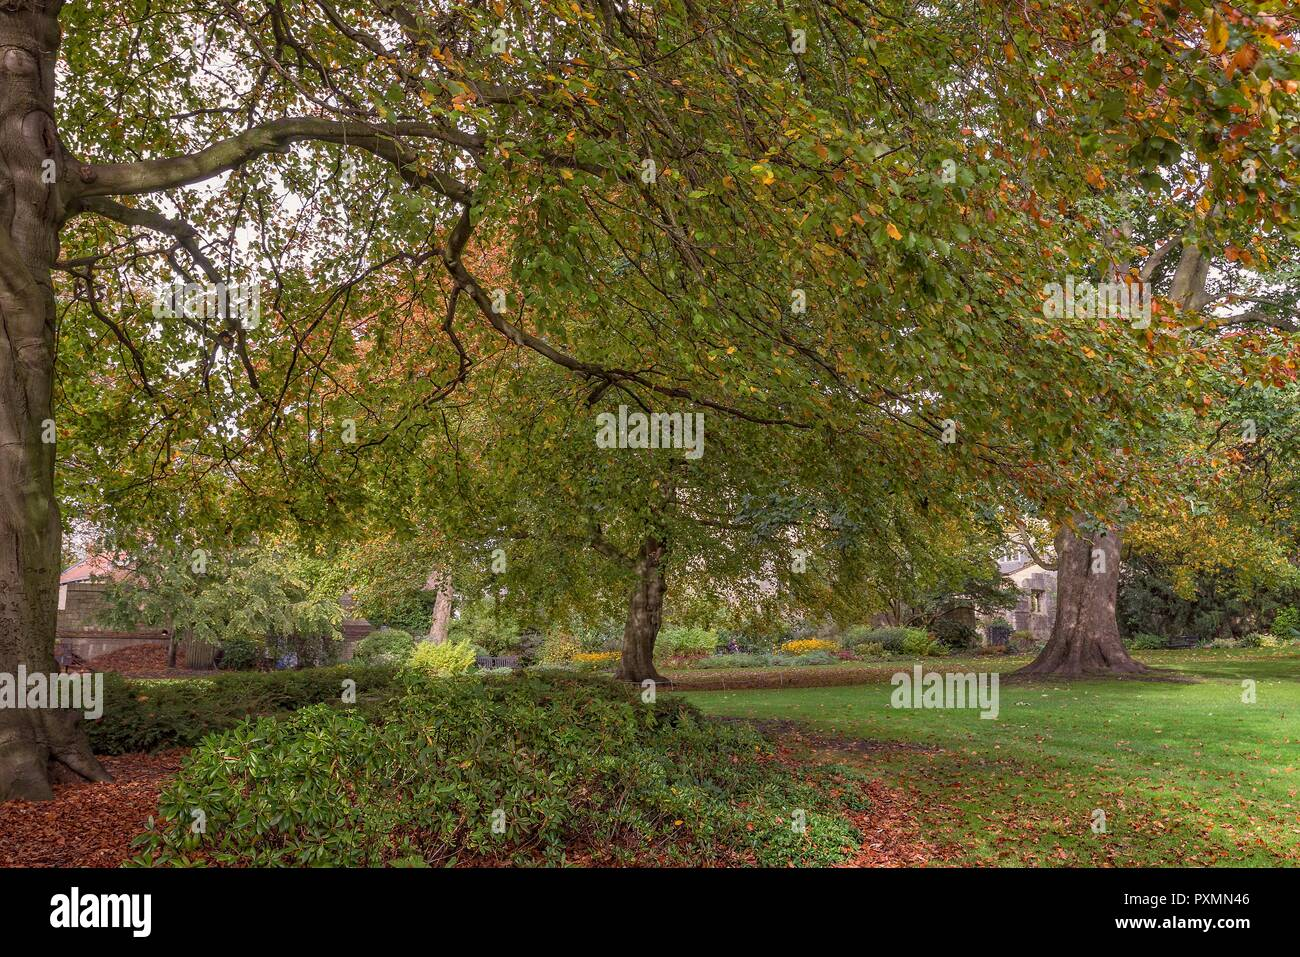 Early autumn in Museum Gardens in York. Leaves litter the ground and sunlight dapples the lawn between the autumnal trees. Stock Photo